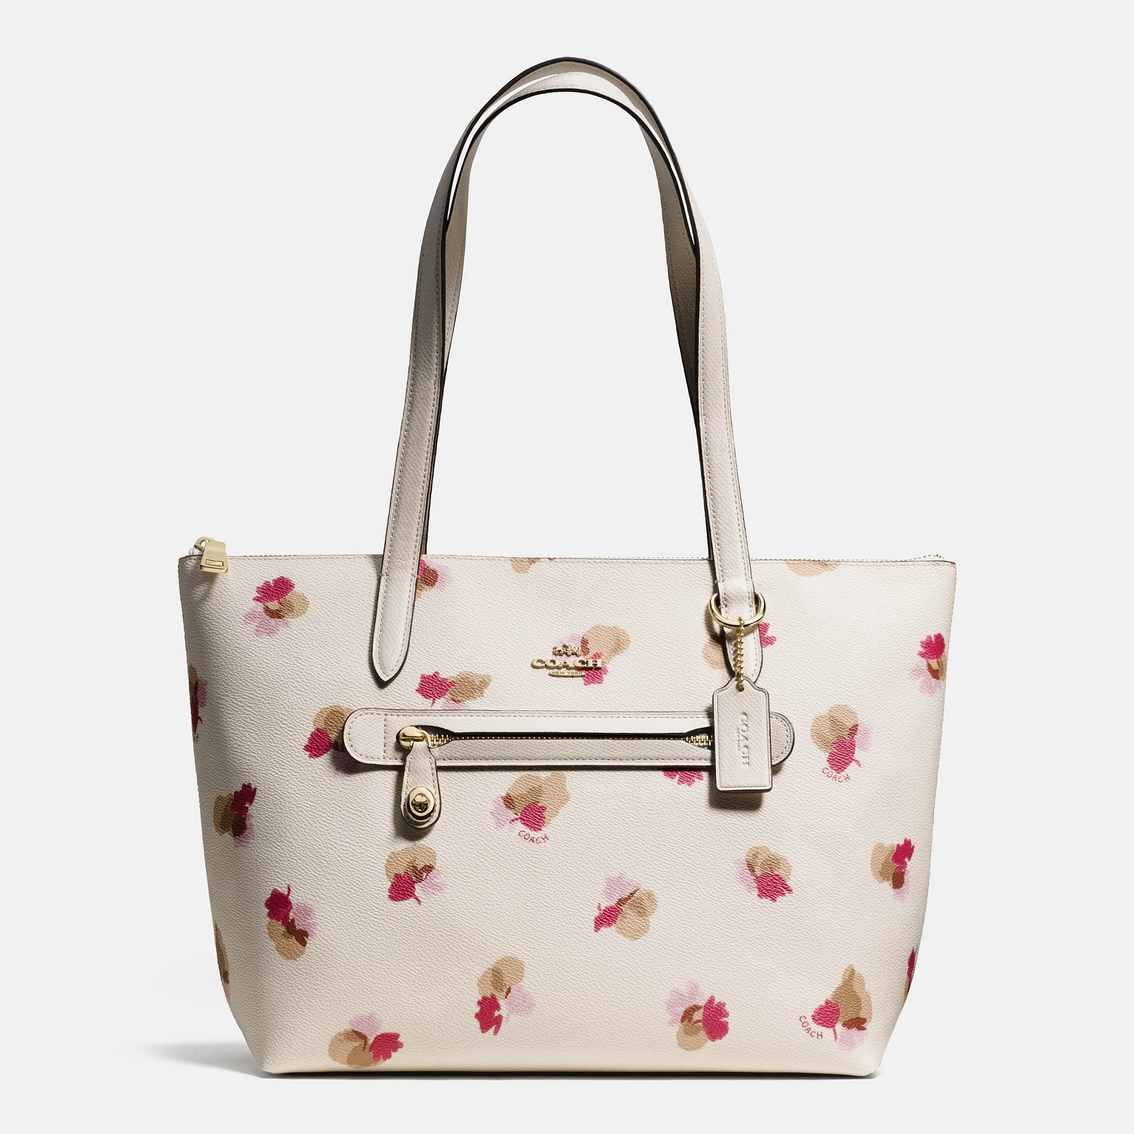 Coach Taylor Tote In Floral Print Coated Canvas Totes